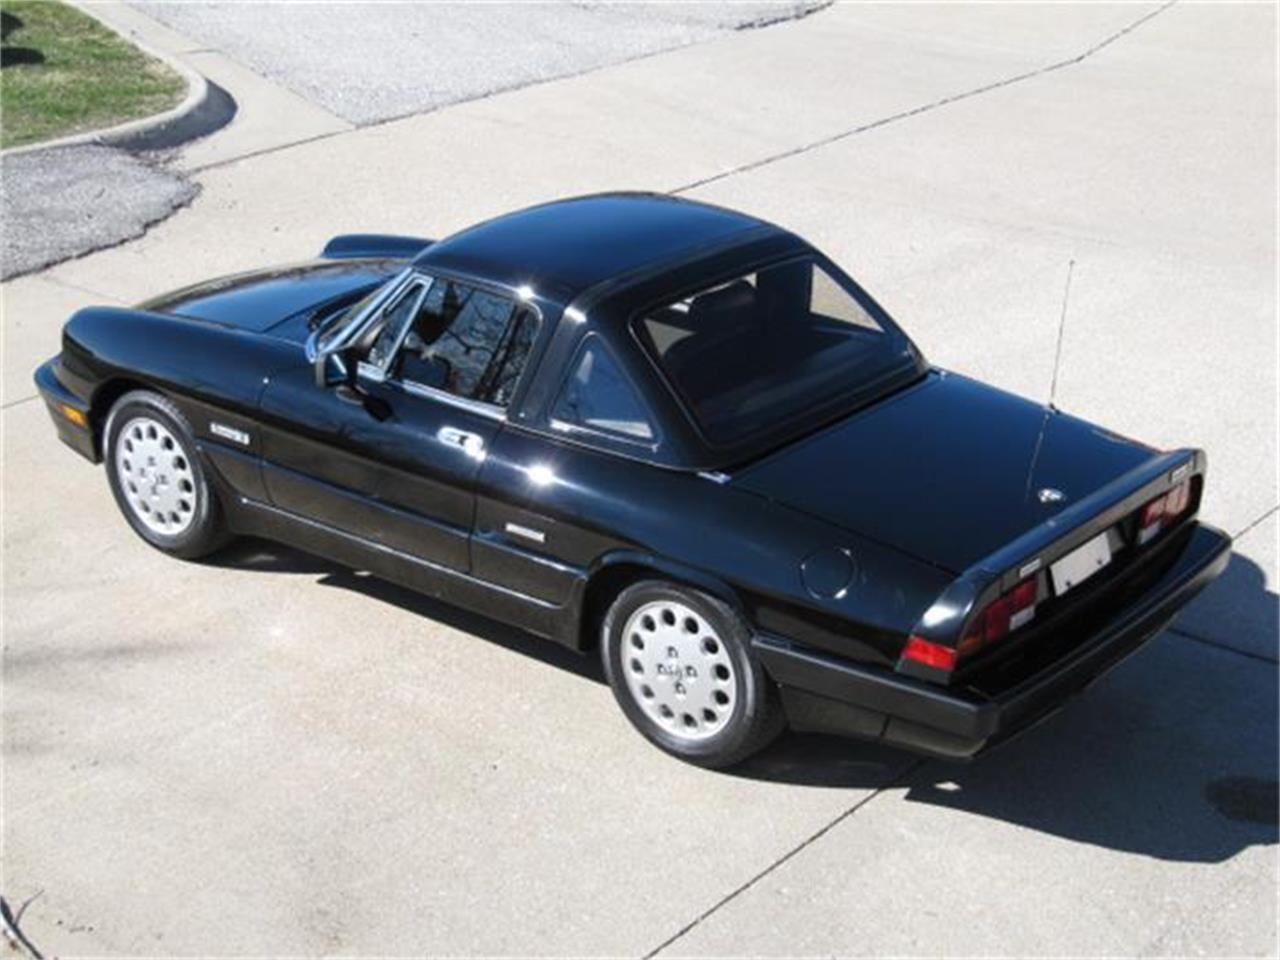 Large Picture of 1988 Quadrifoglio located in Nebraska - $22,900.00 Offered by Classic Auto Sales - GVD7